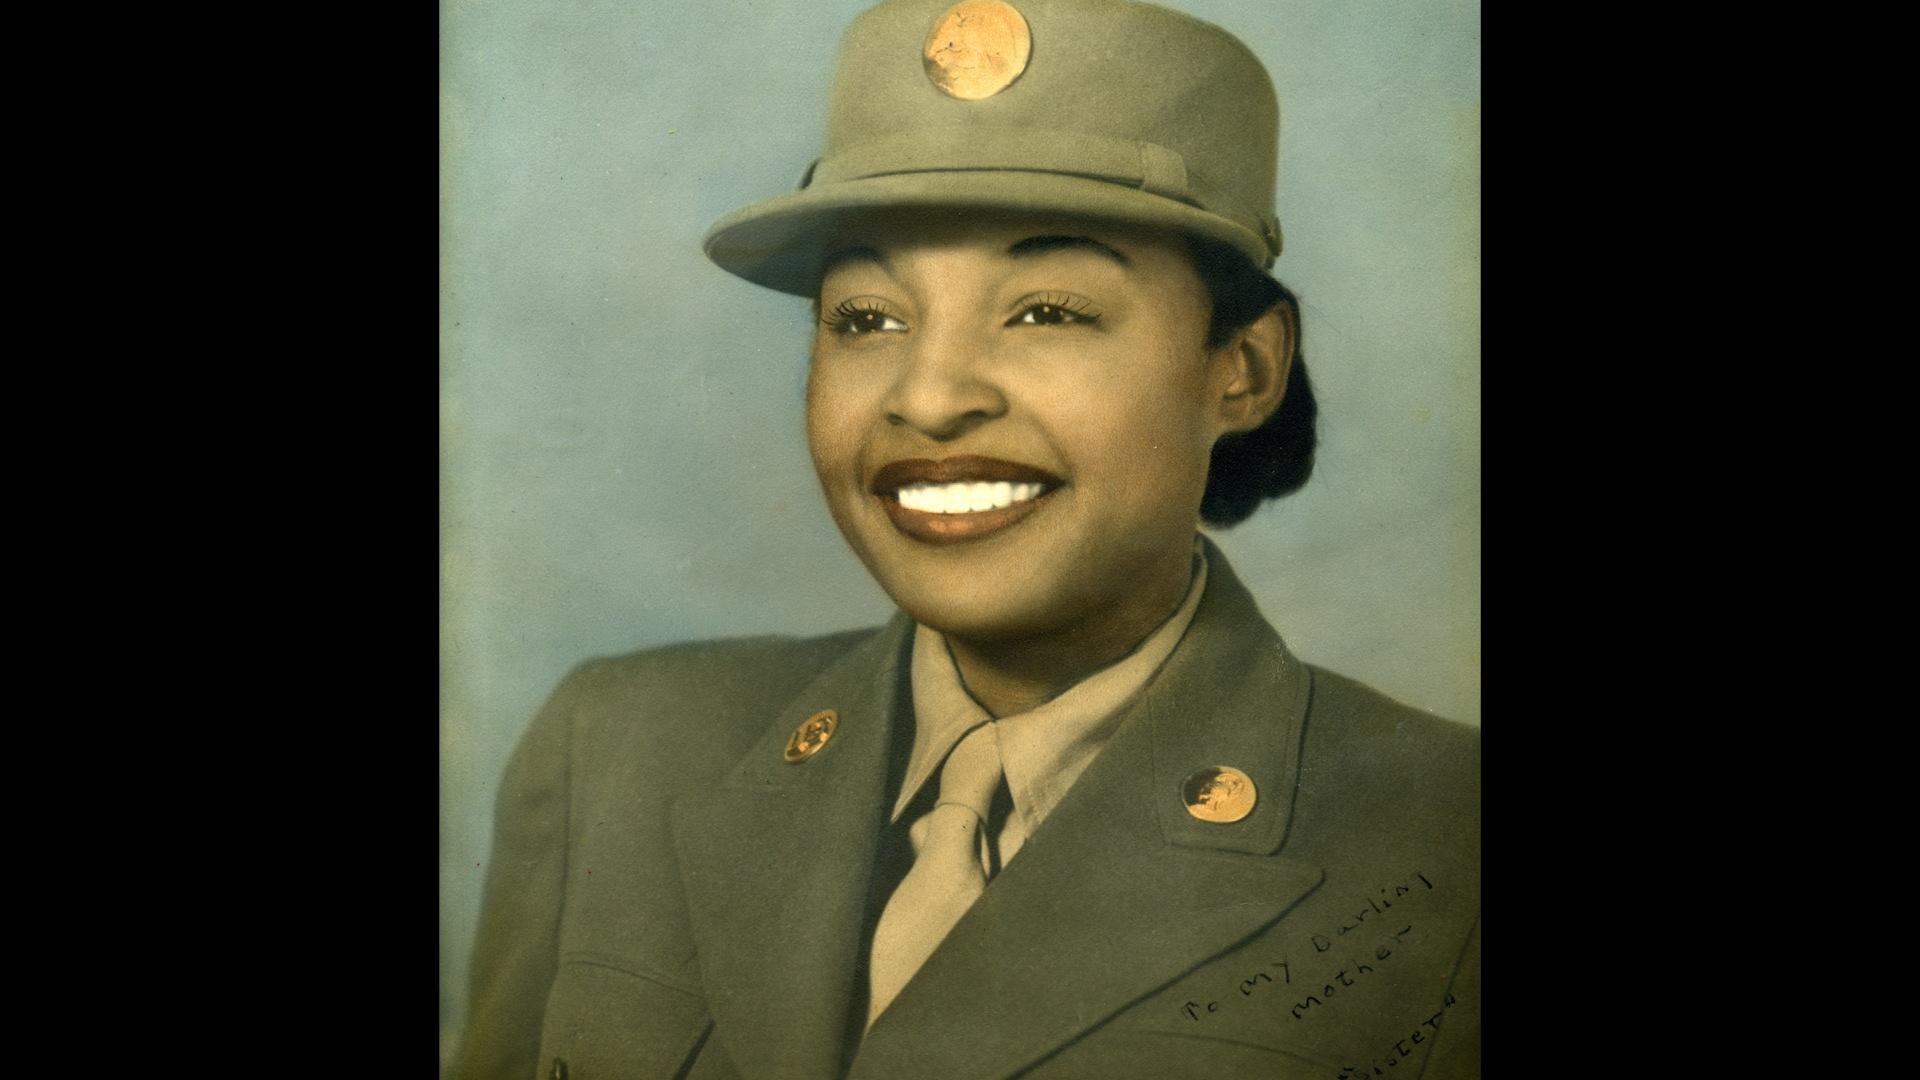 Millie Dunn Veasey: Military and Civil Rights Pioneer